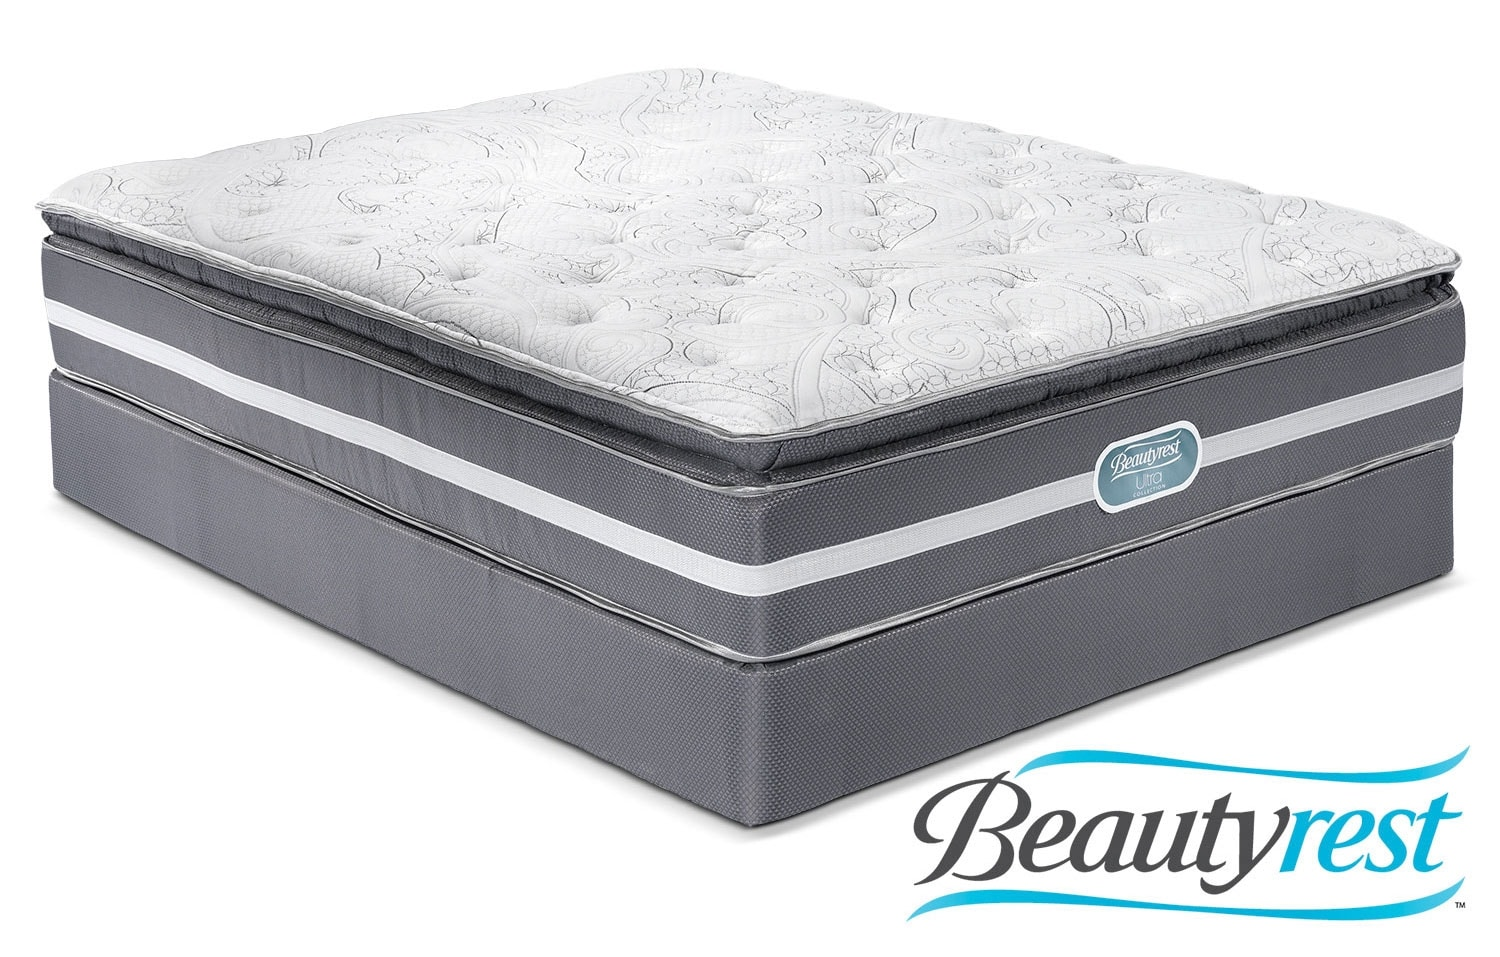 Mattresses and Bedding - Simmons Paradise Firm Twin Mattress/Boxspring Set